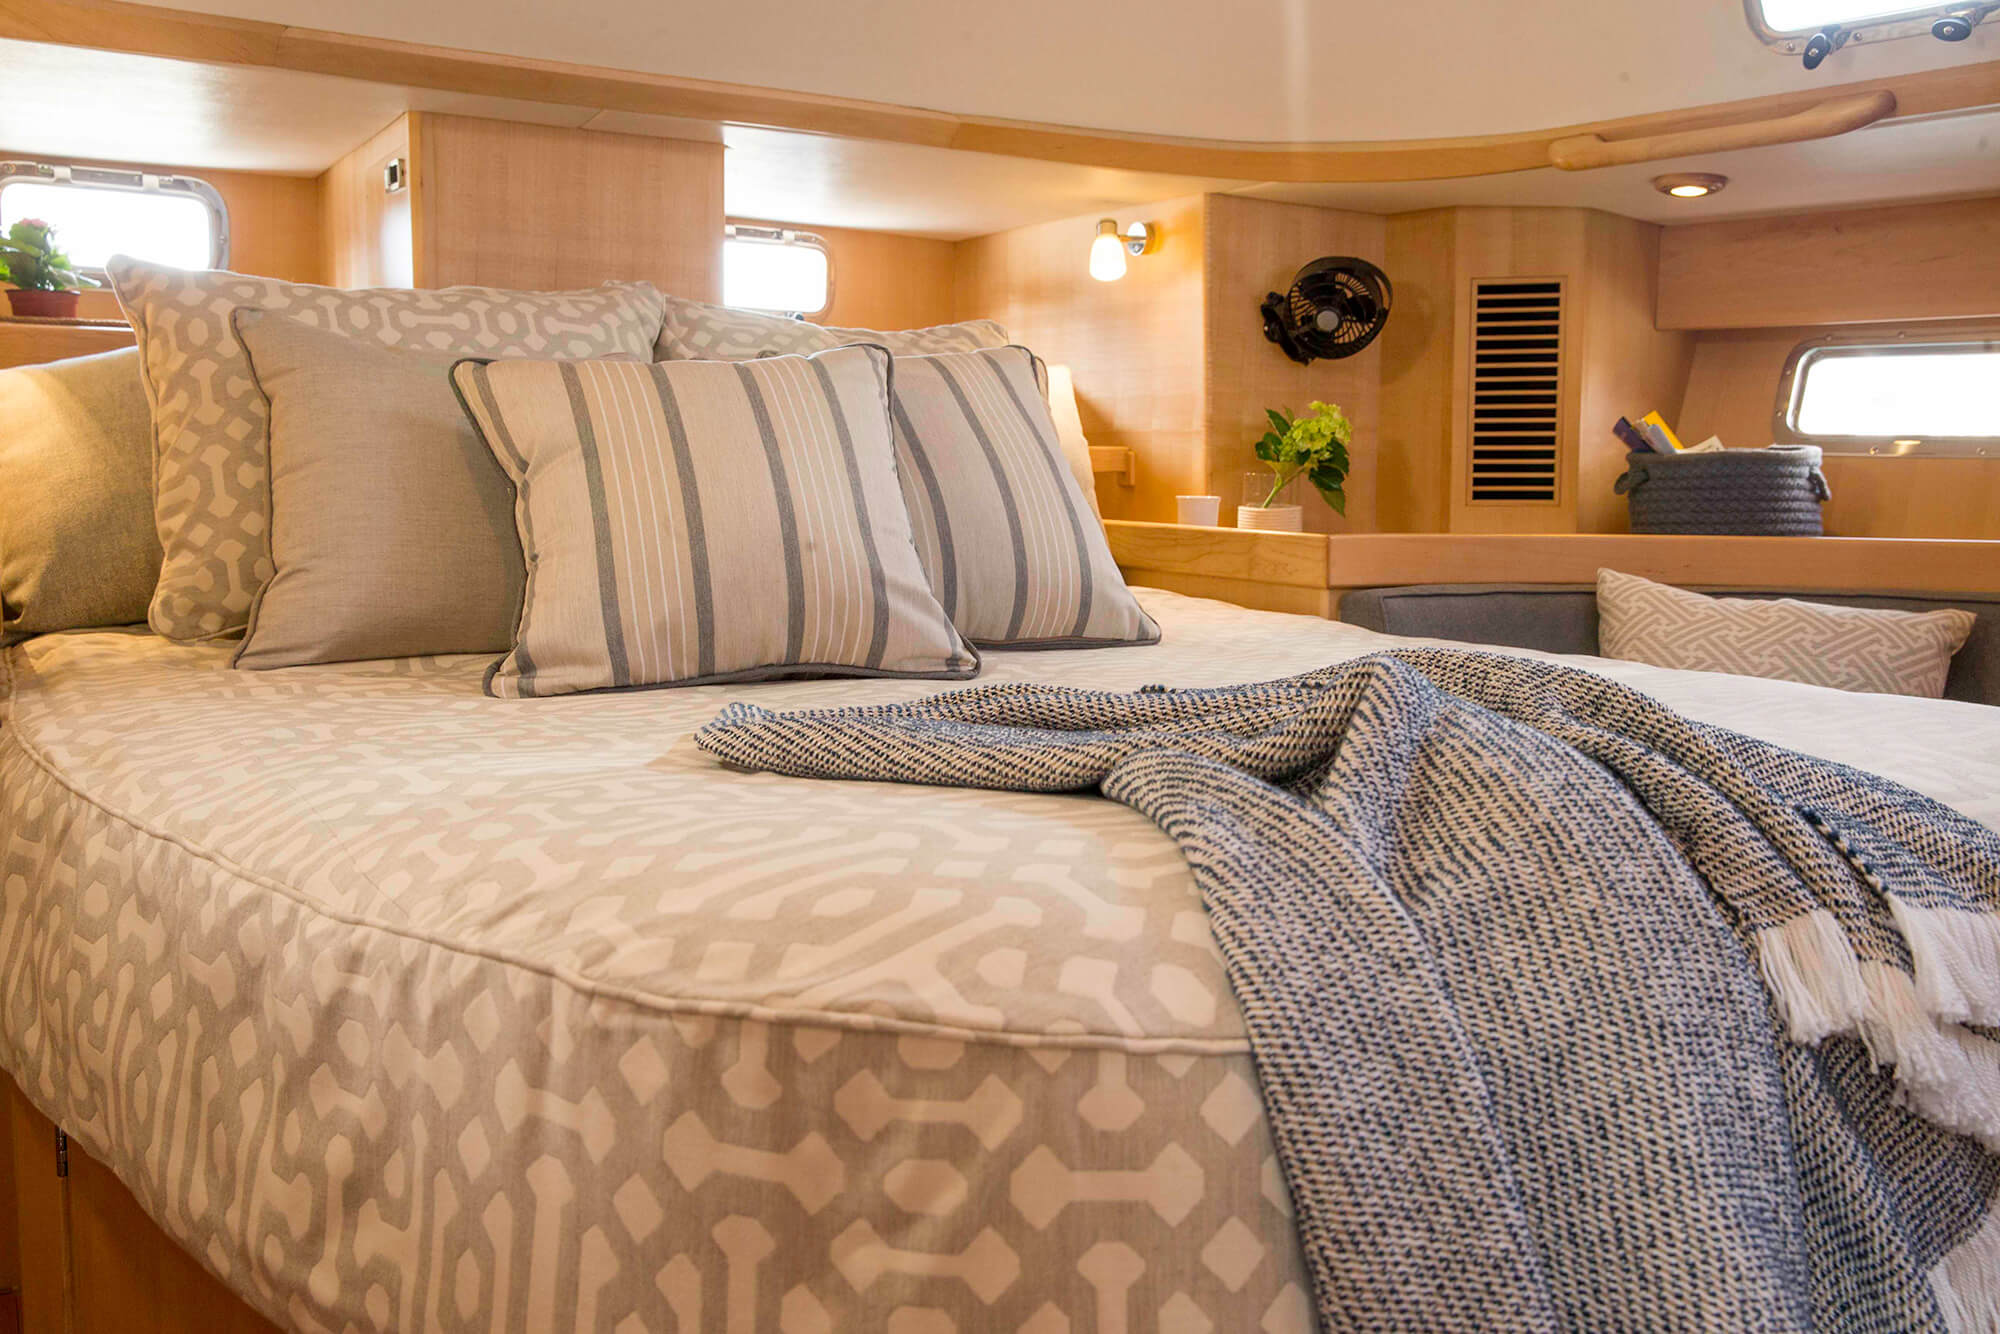 A bed on a sailboat is covered in Sunbrella upholstery fabric Fretwork Pewter with coordinating throw pillows